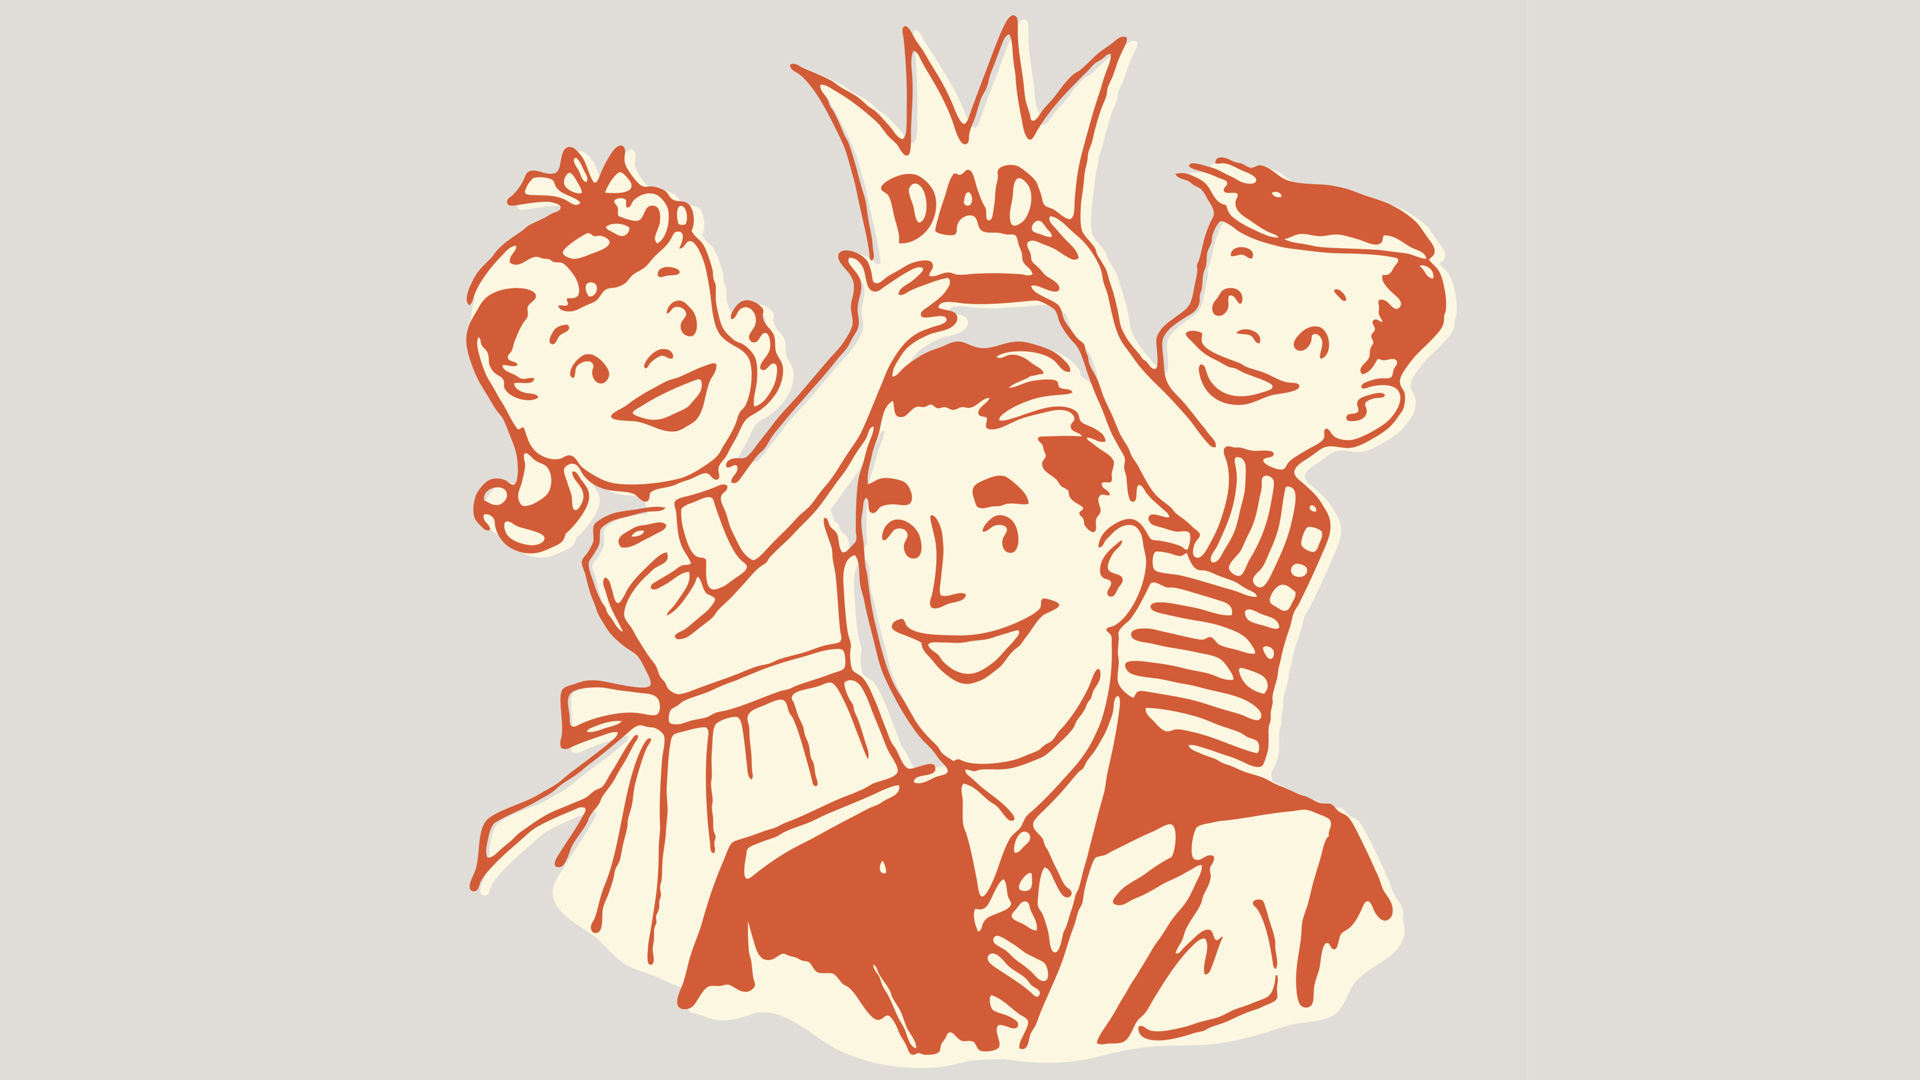 Fondo Dia Del Padre: Father's Day Backgrounds, Pictures, Images